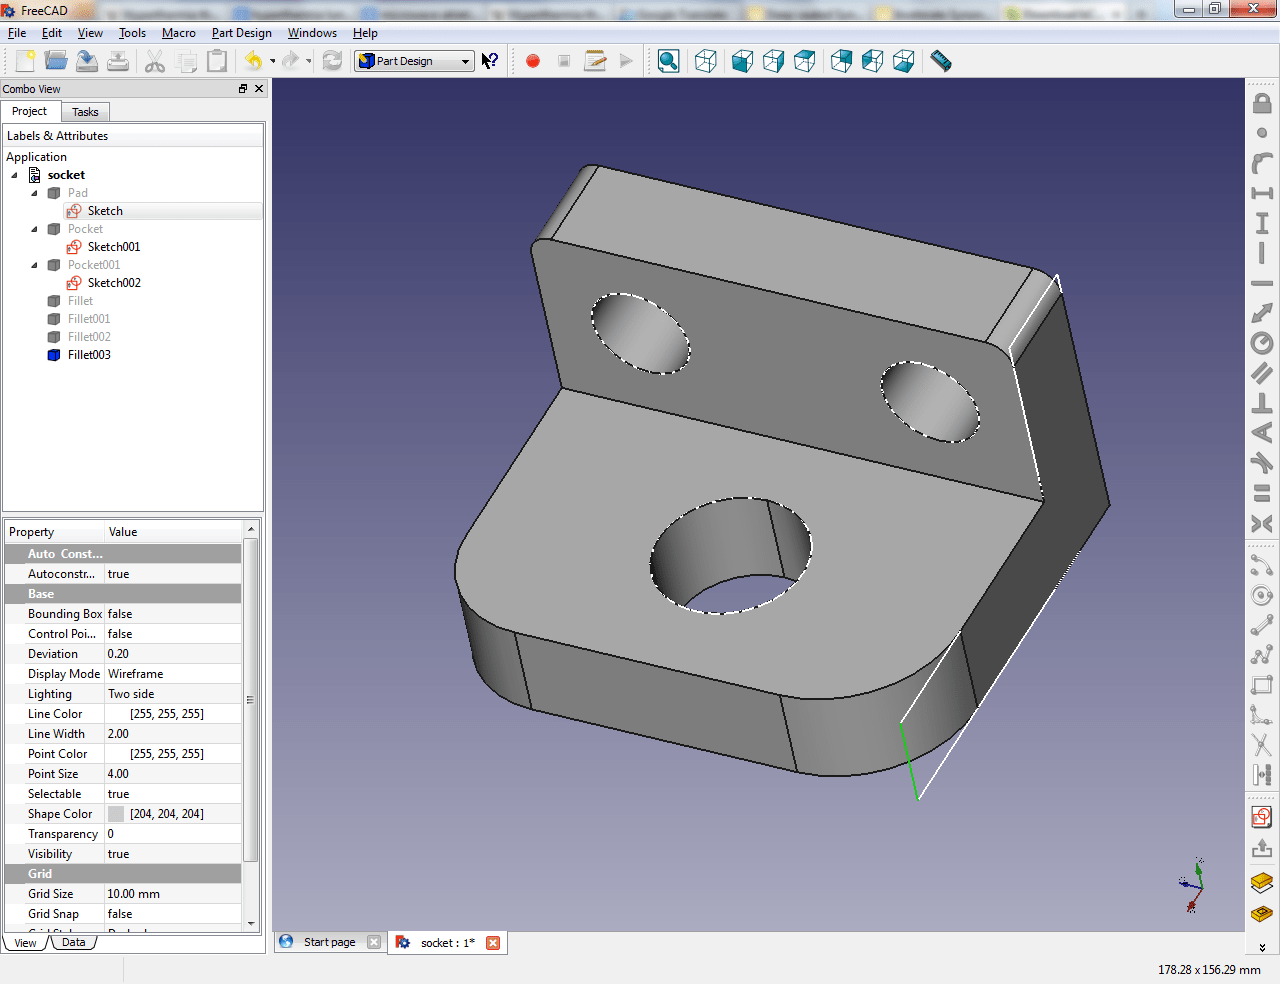 3d Programme How To Get Cad Software For Mechanical Design Free Or For